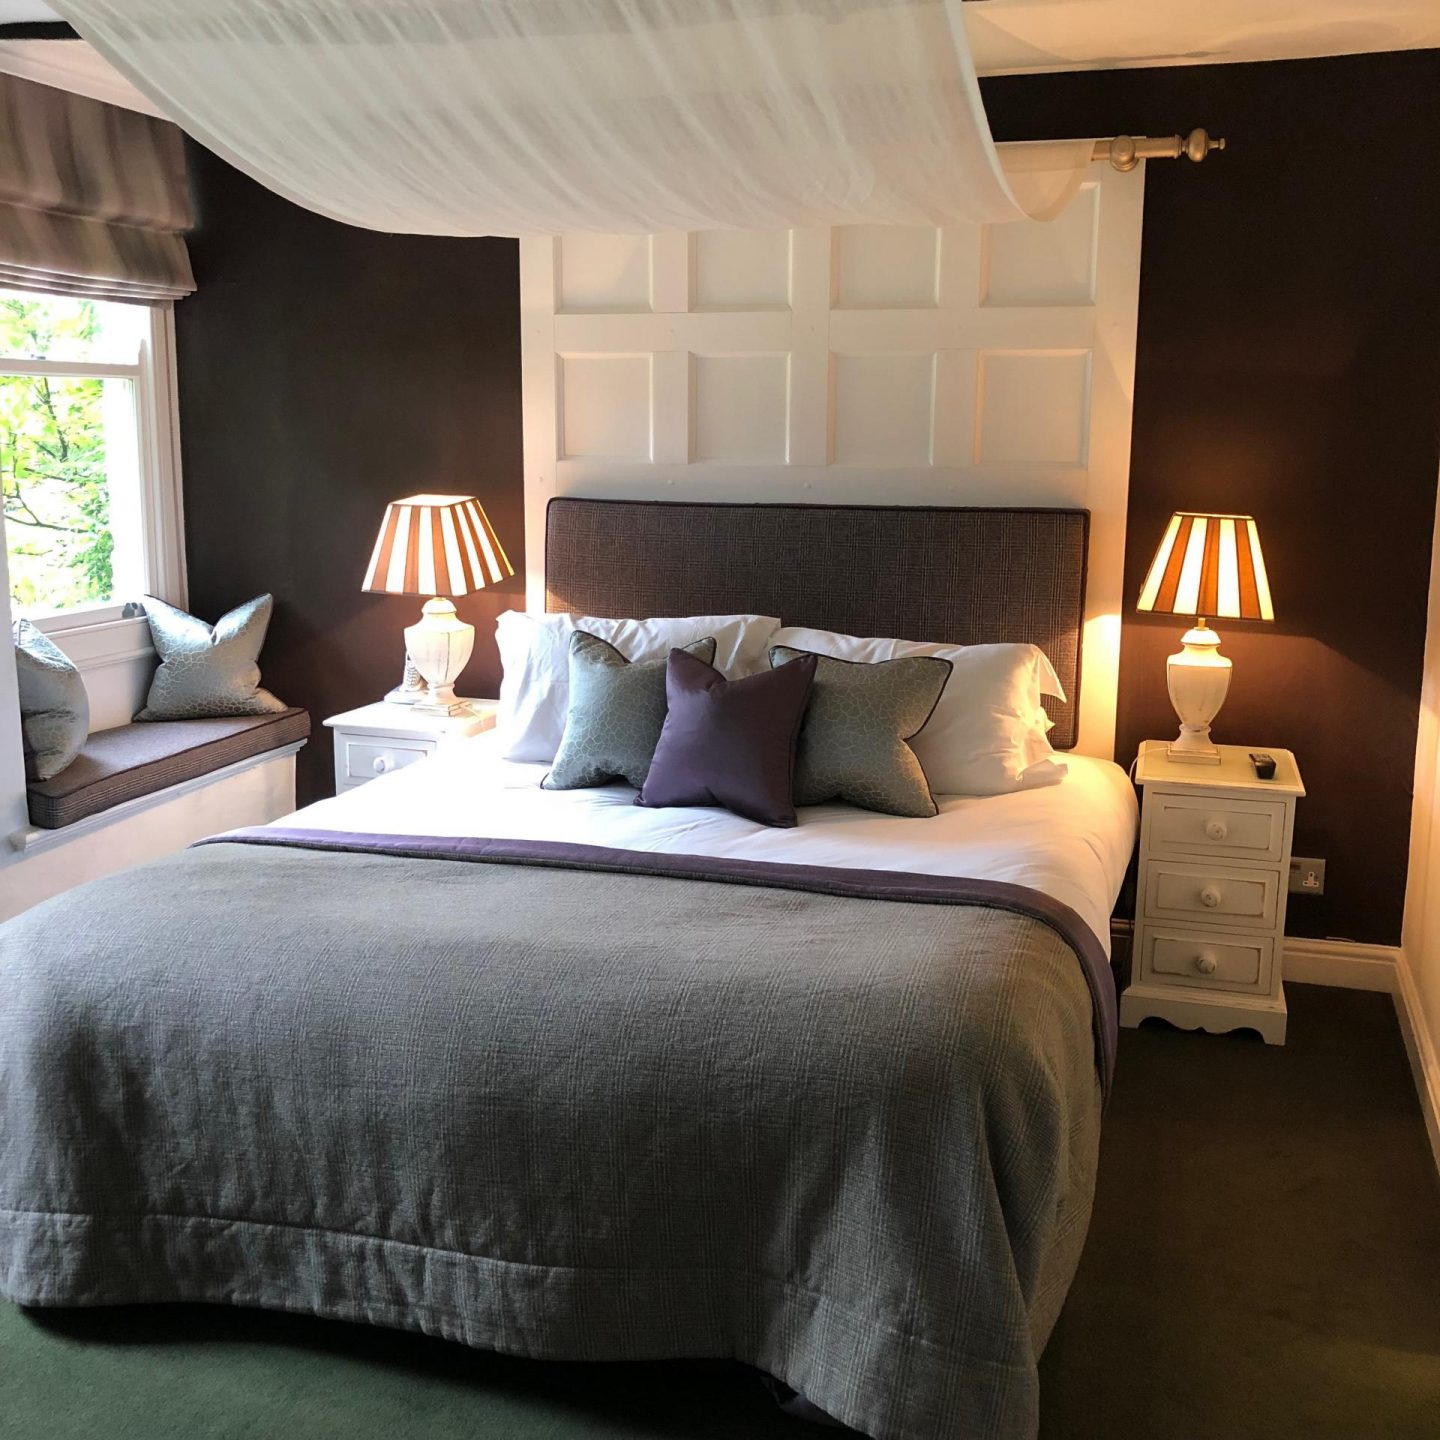 Hipping Hall, Grand Room Luxury Hotel Review - Rachel Nicole UK Travel Blogger